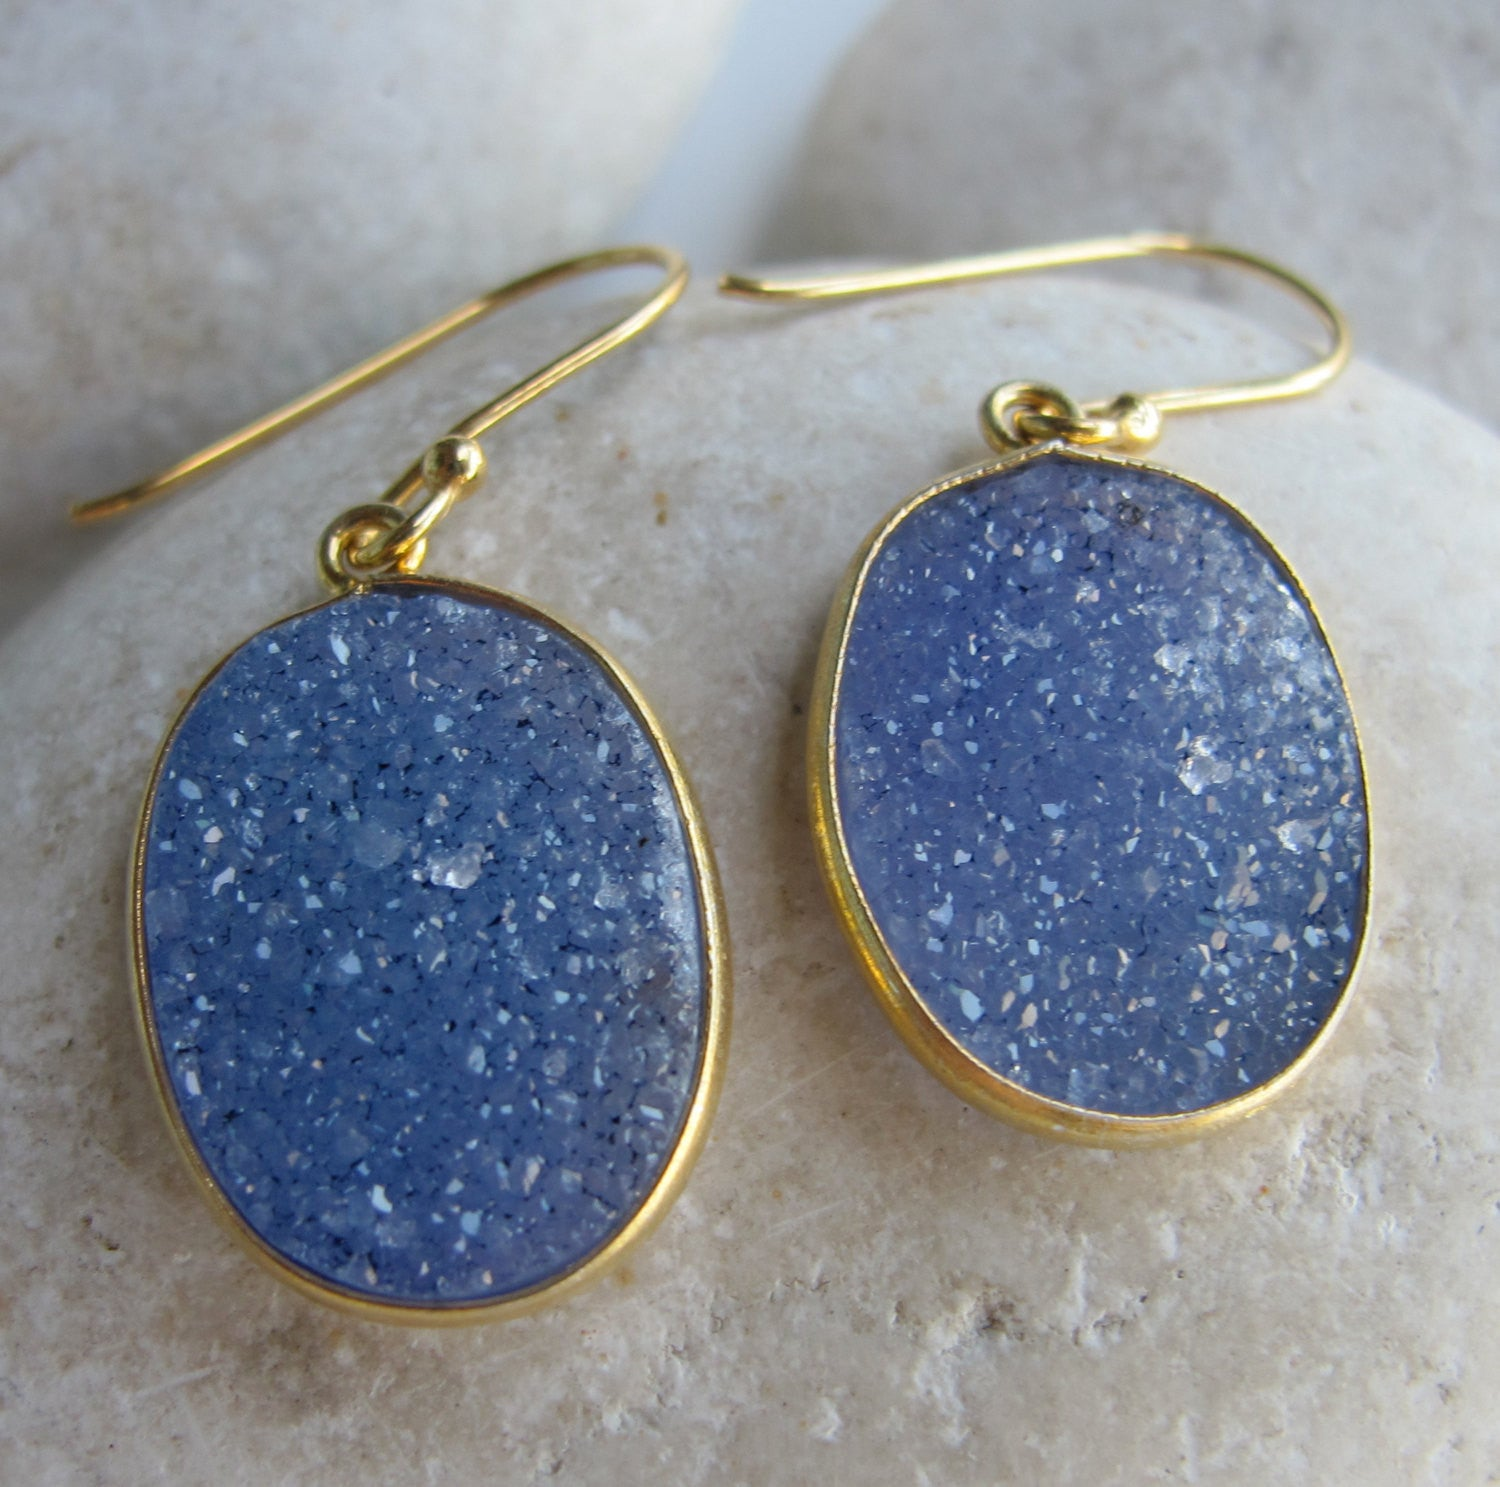 Oval Blue Druzy Earring- Gemstone Earring- Blue Earring- Statement Earring- Blue Stone Earring- Crystal Earring- Druzy Earring- Earring